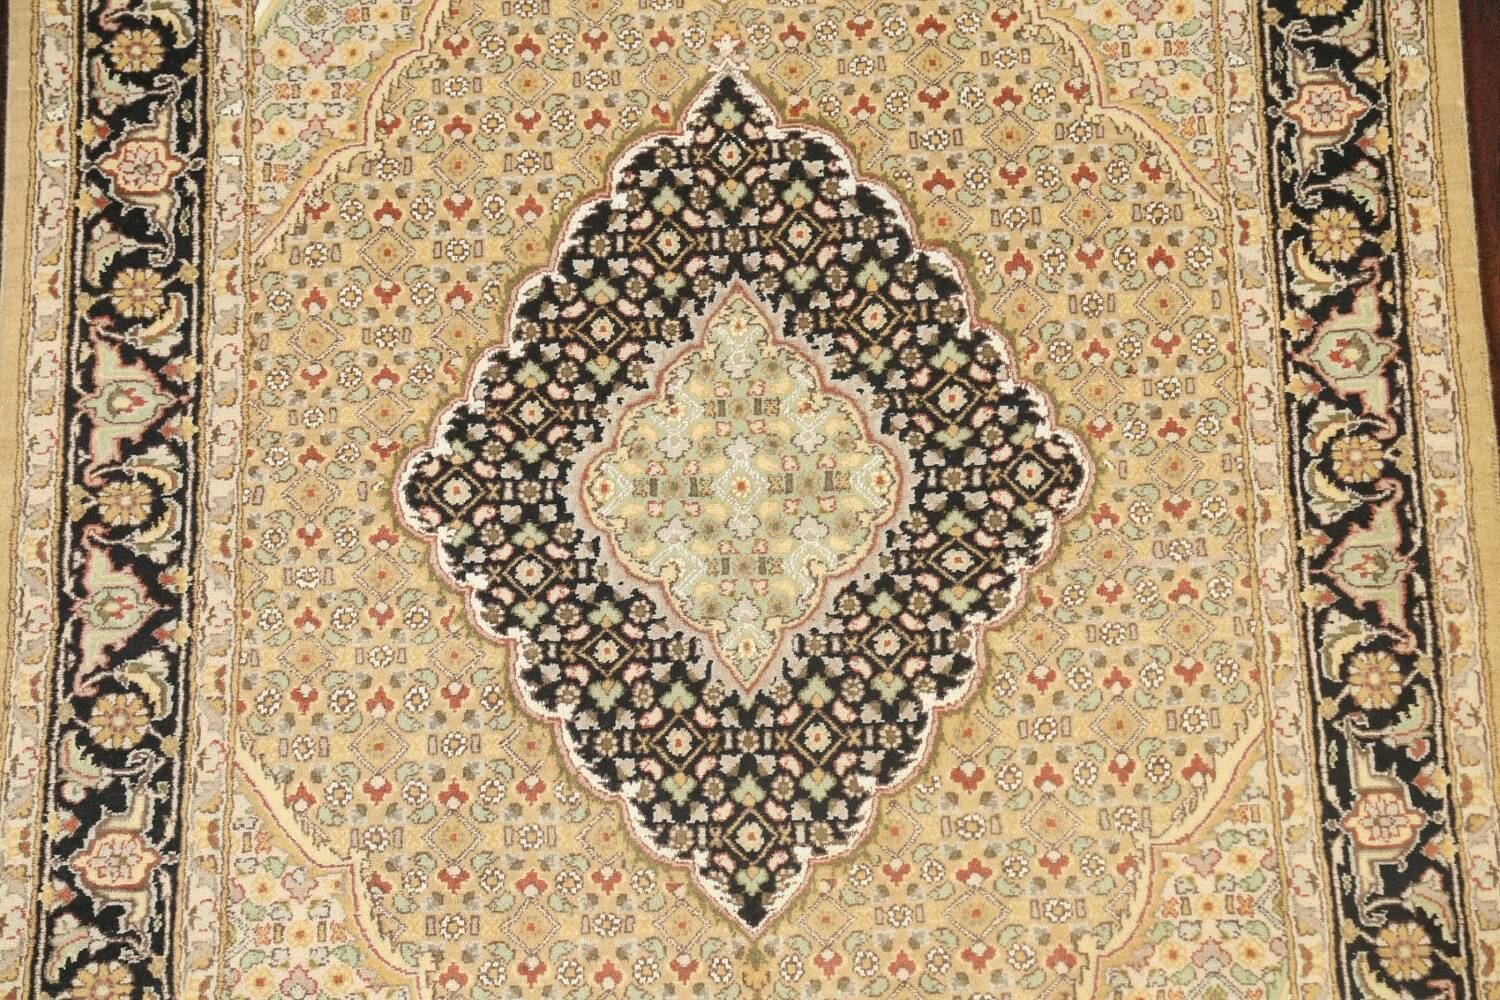 Vegetable Dye Geometric Tabriz Mahi Oriental Area Rug 4x6 image 4